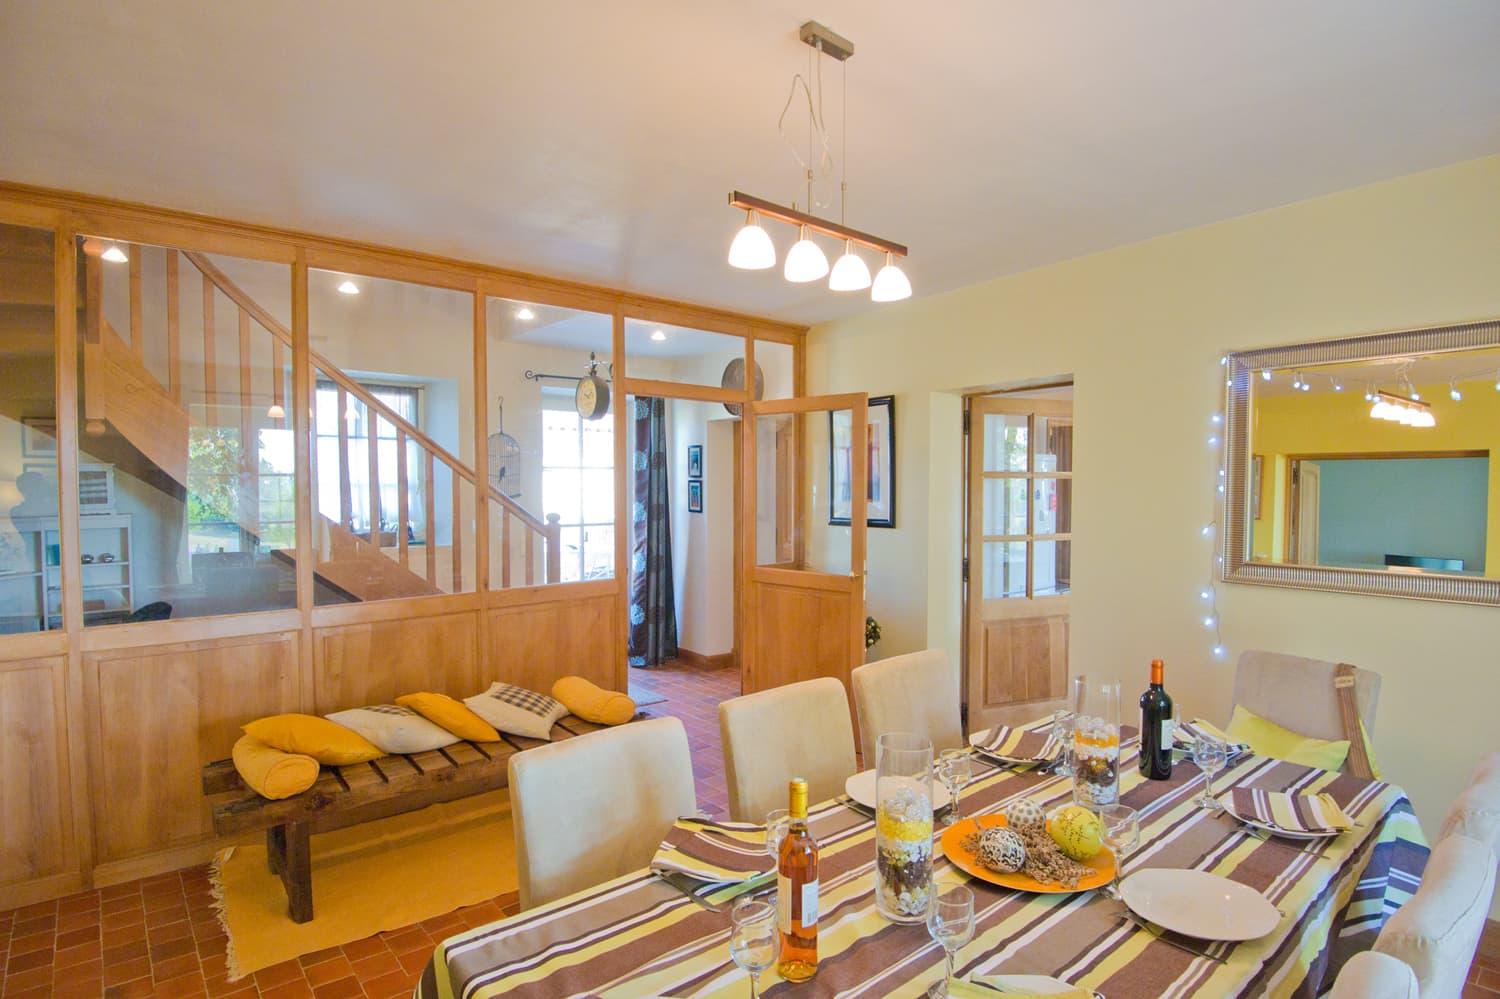 Dining room in Dordogne rental accommodation